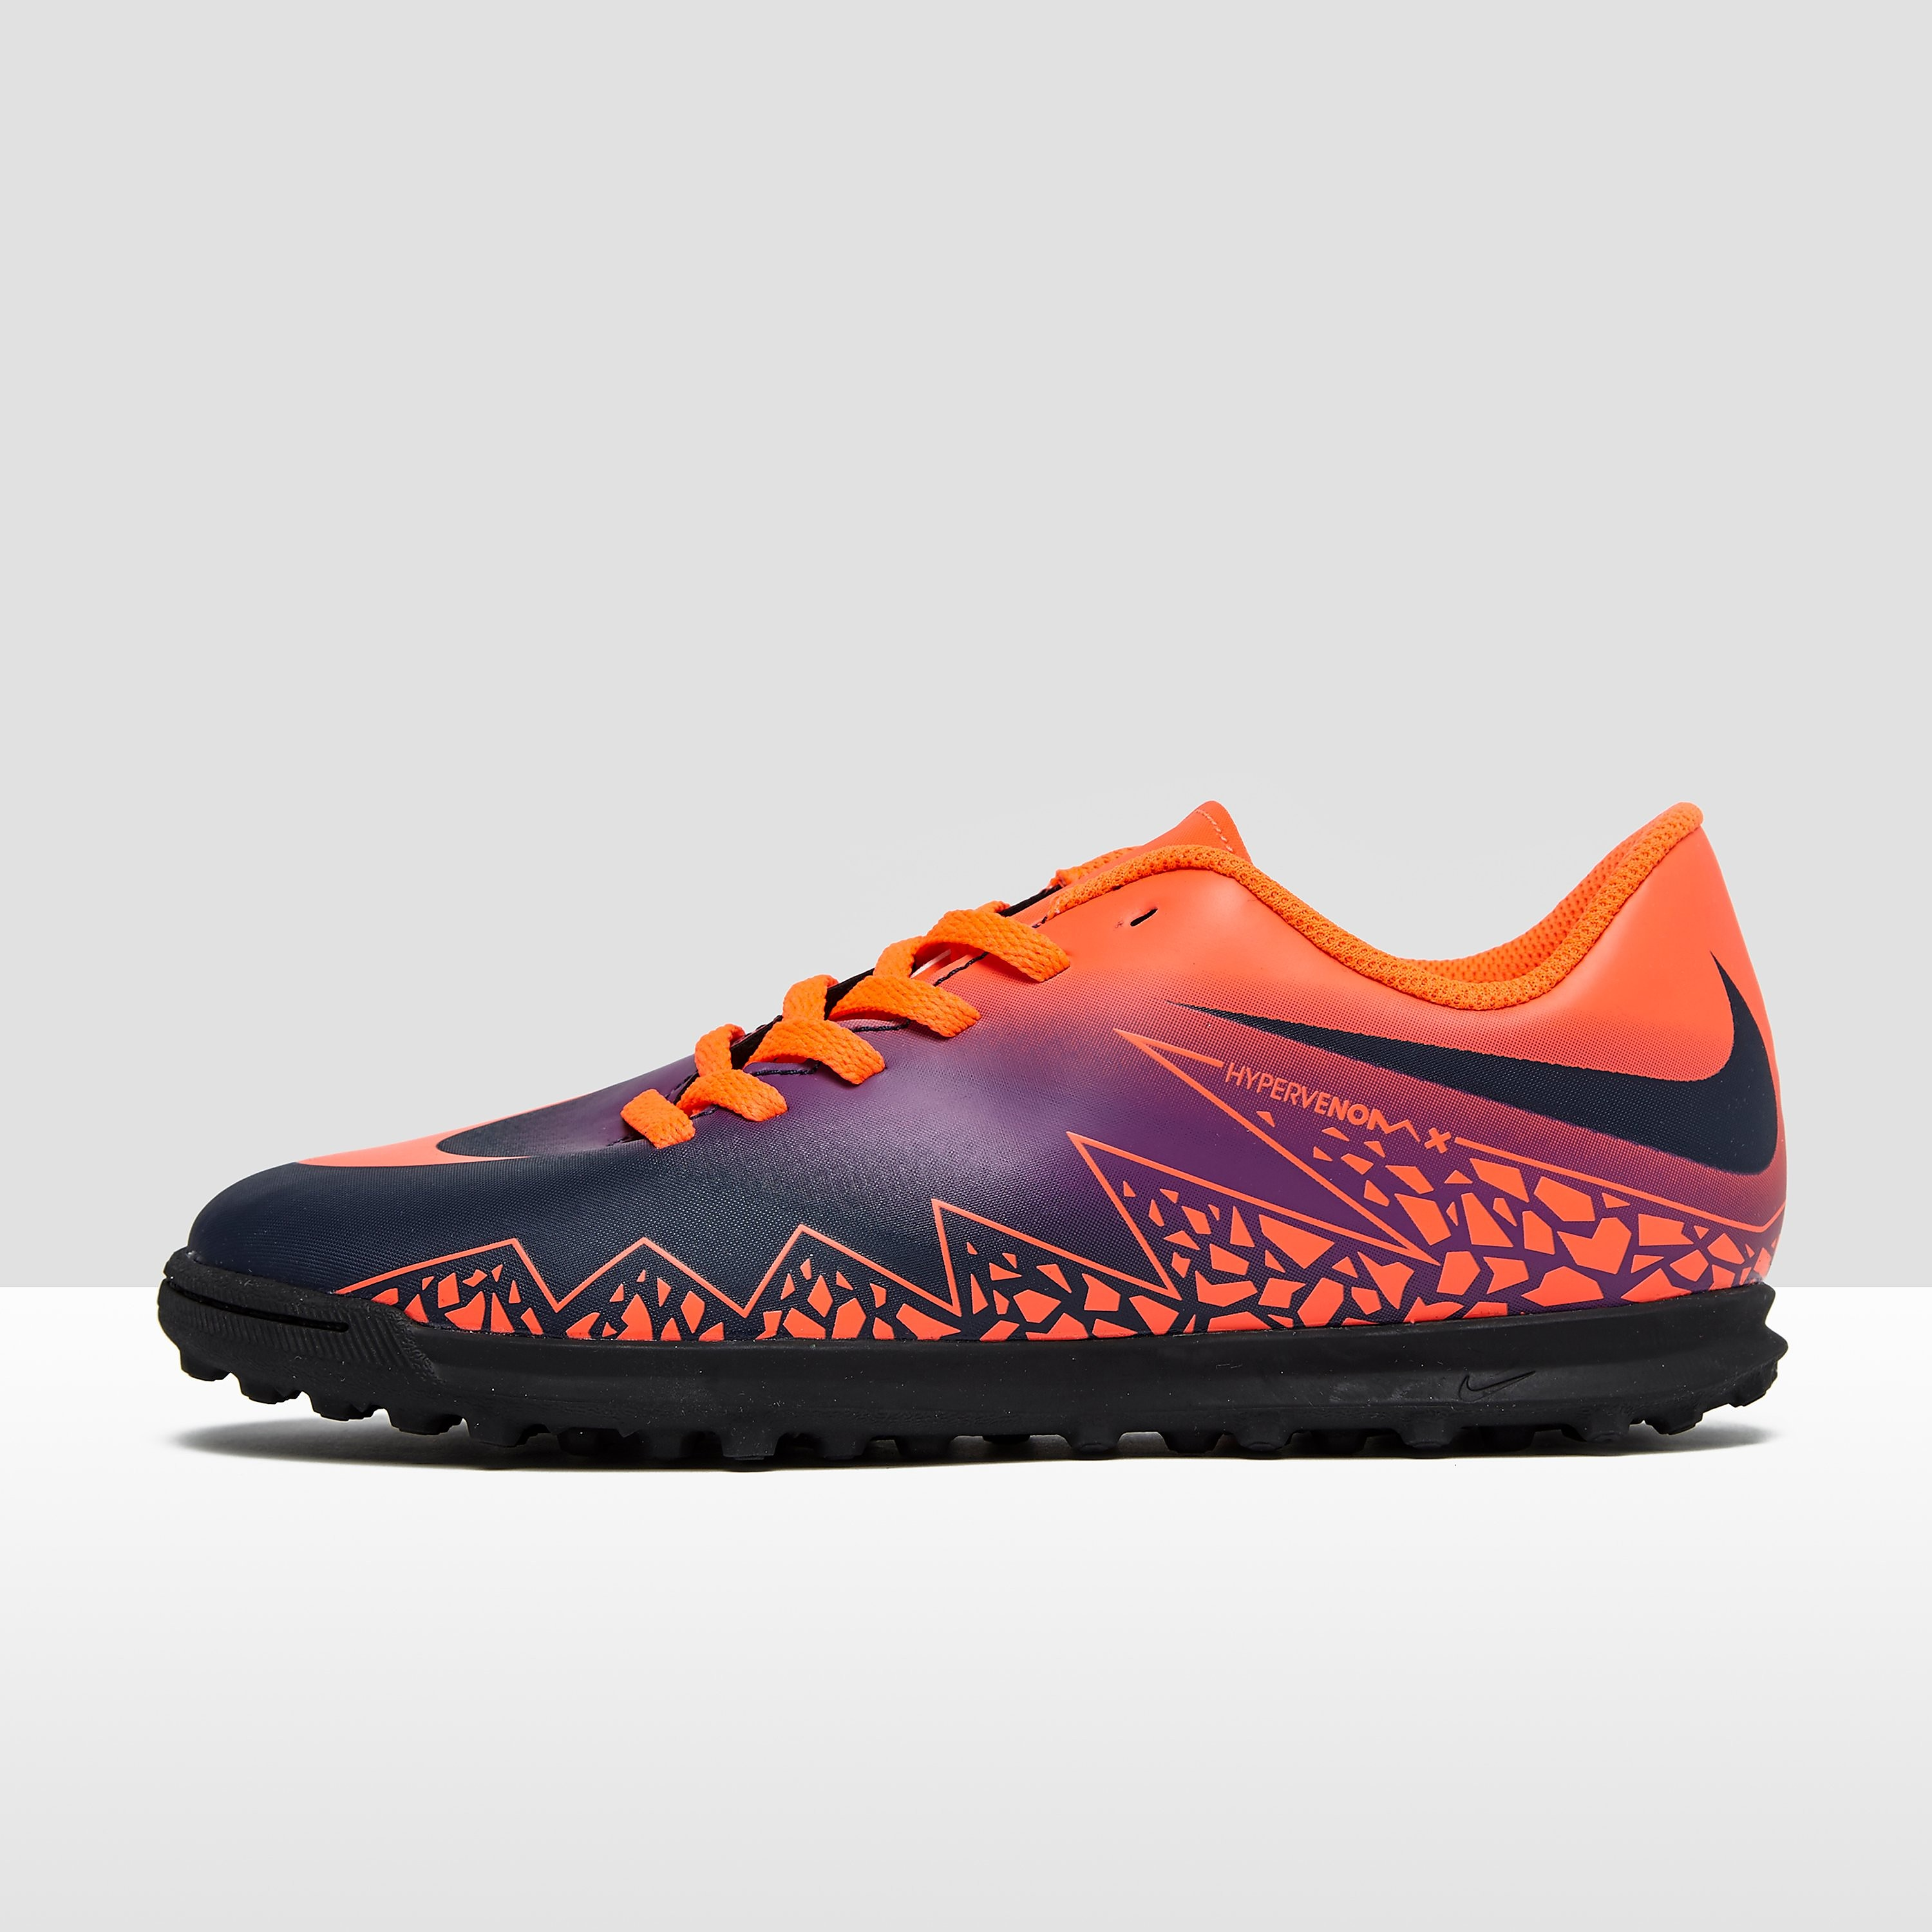 Nike Floodlight Hypervenom Phade II Turf Junior